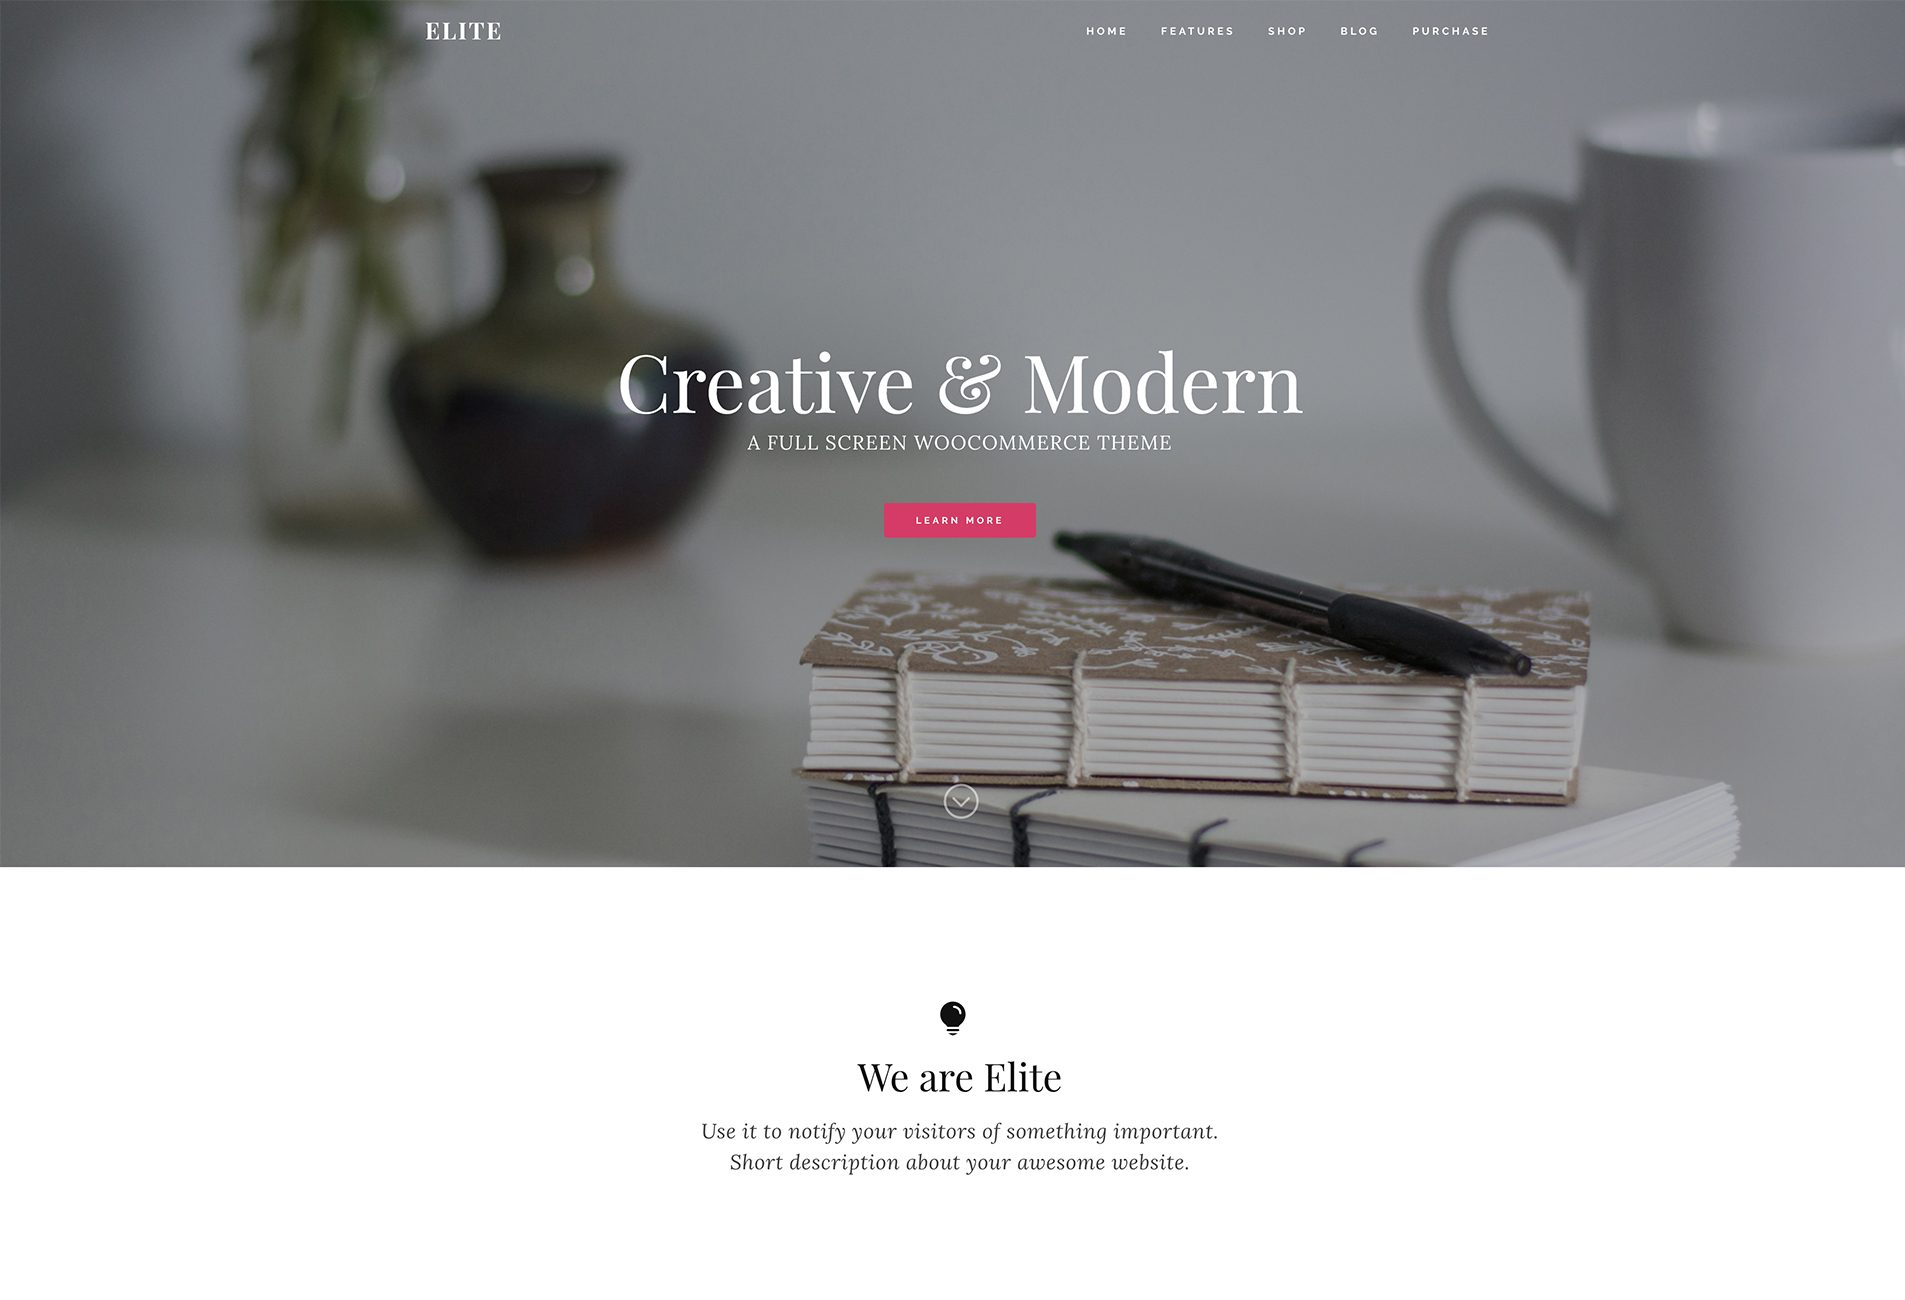 Elite WooCommerce theme